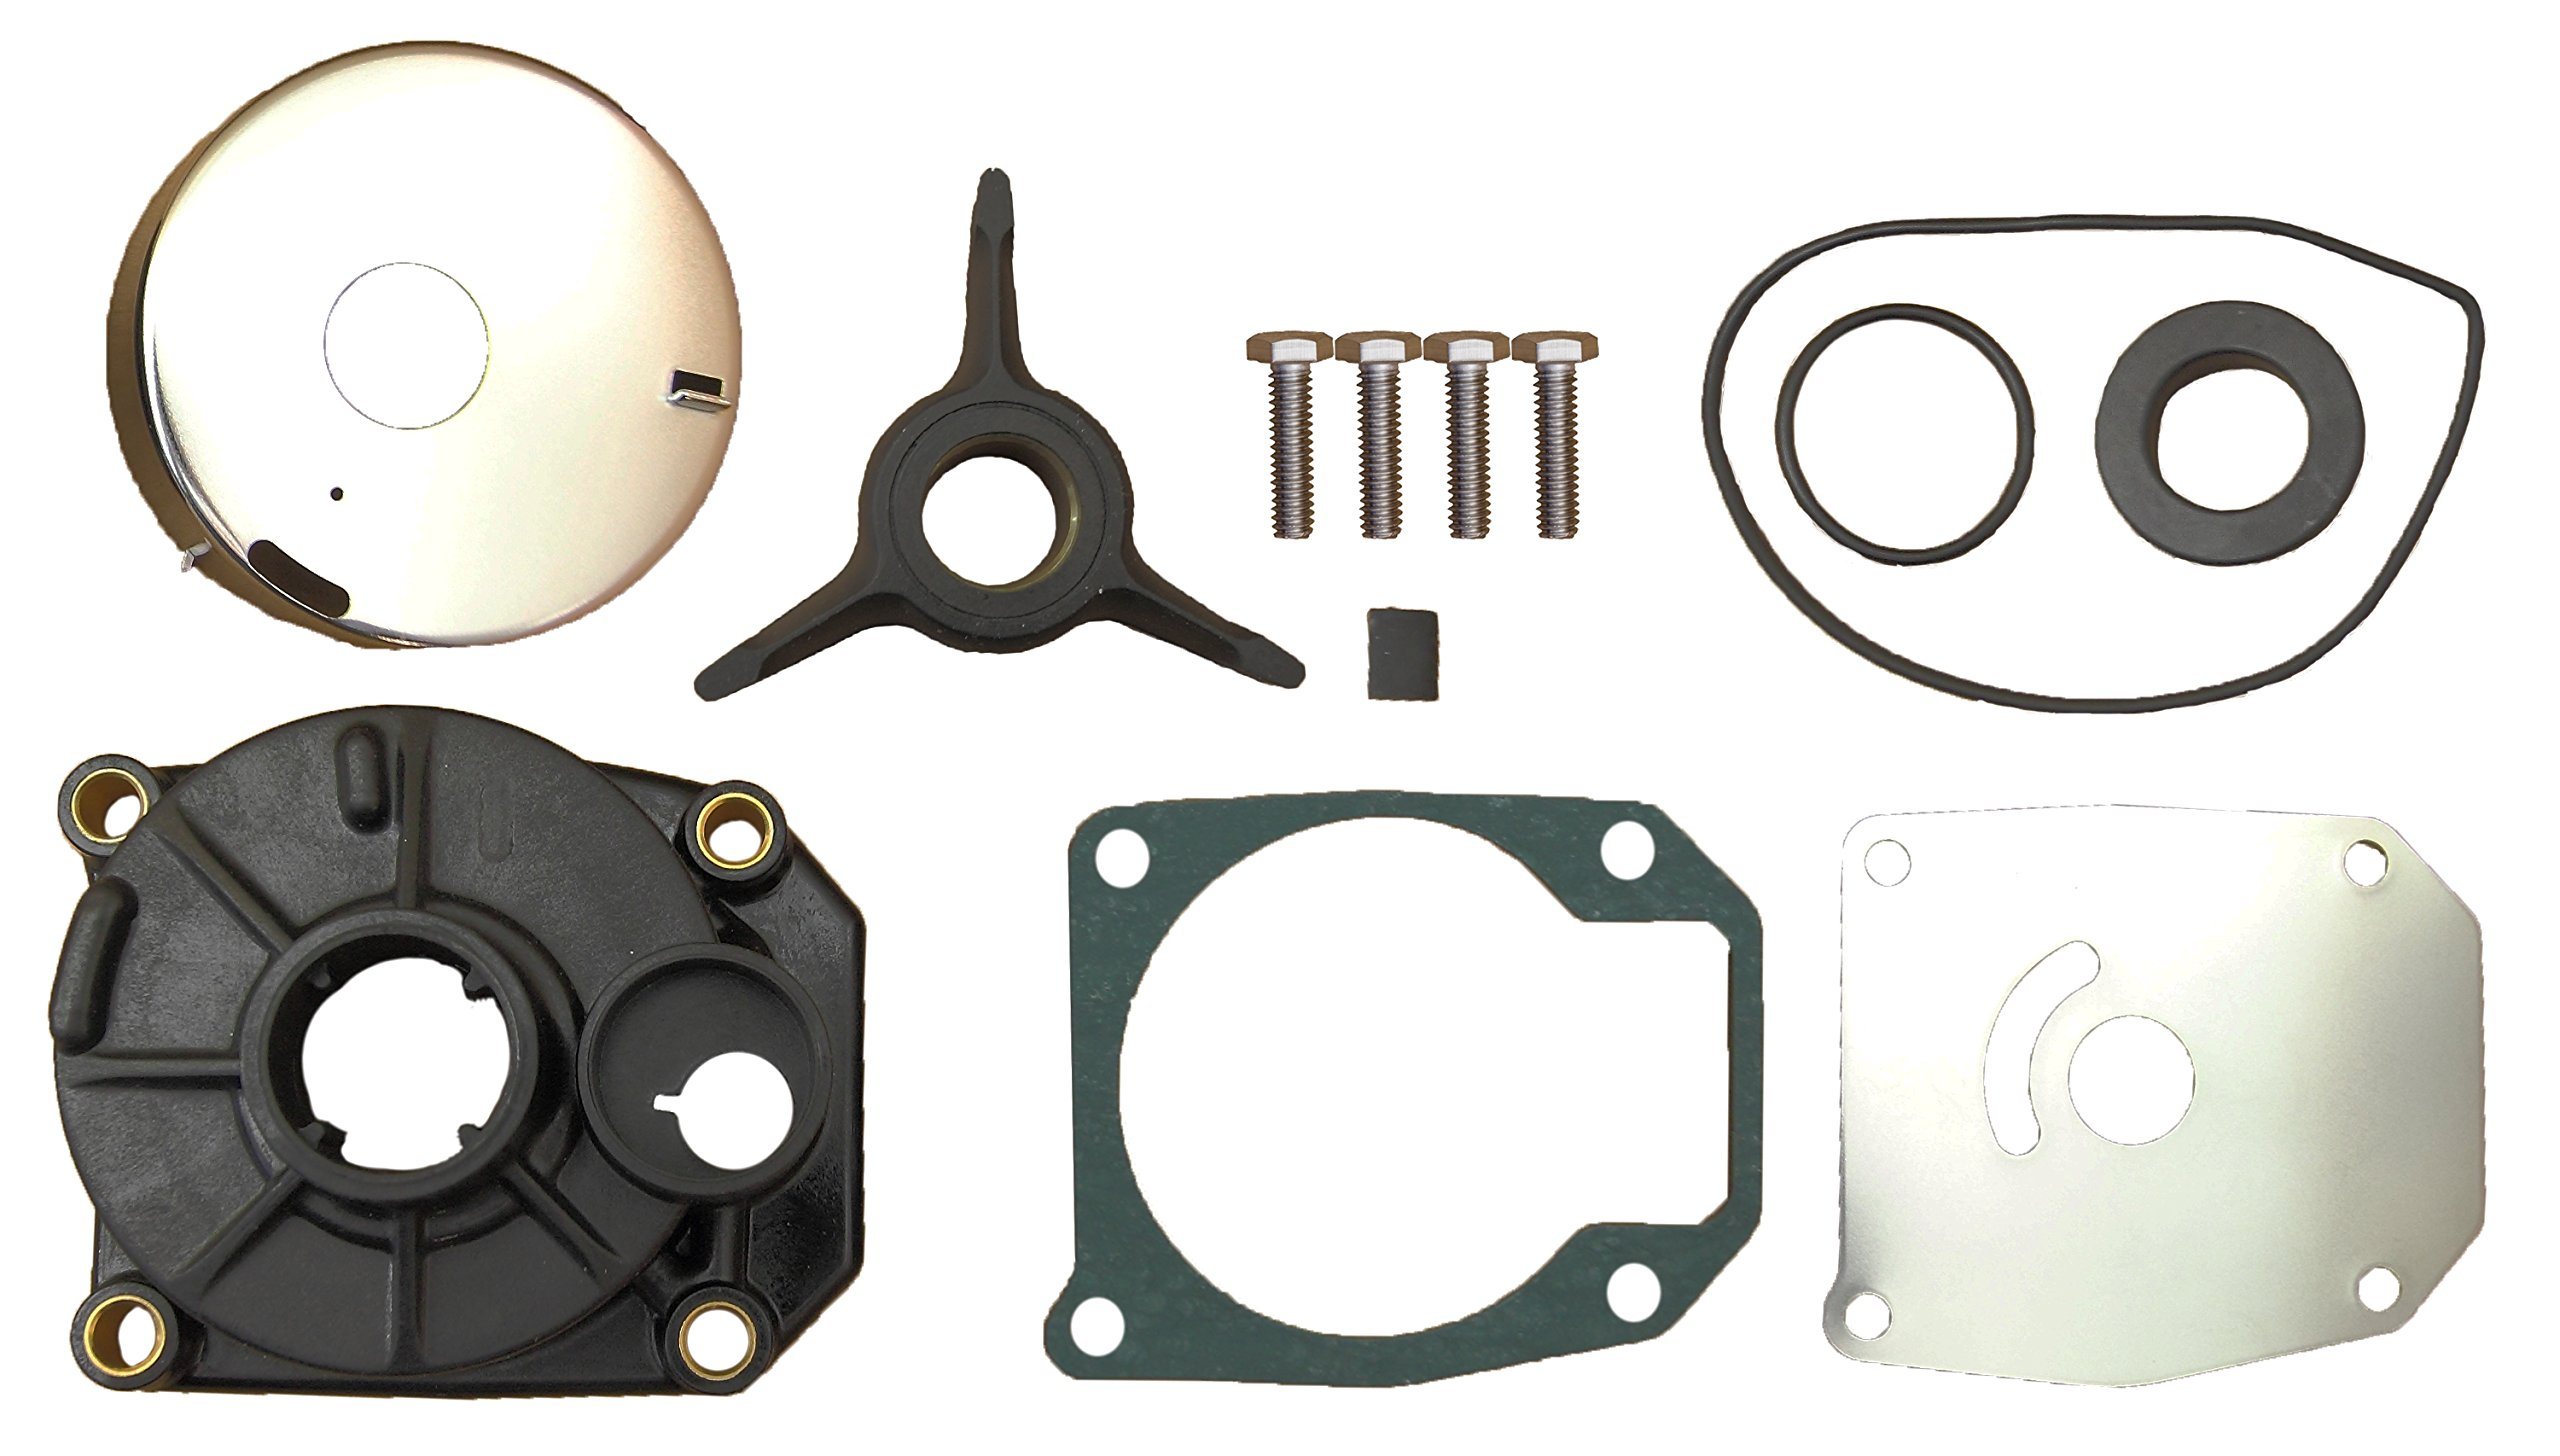 Evinrude Johnson 40 48 50 HP Water Pump Impeller Kit Fits 1988 to 2005 Replaces: 438592